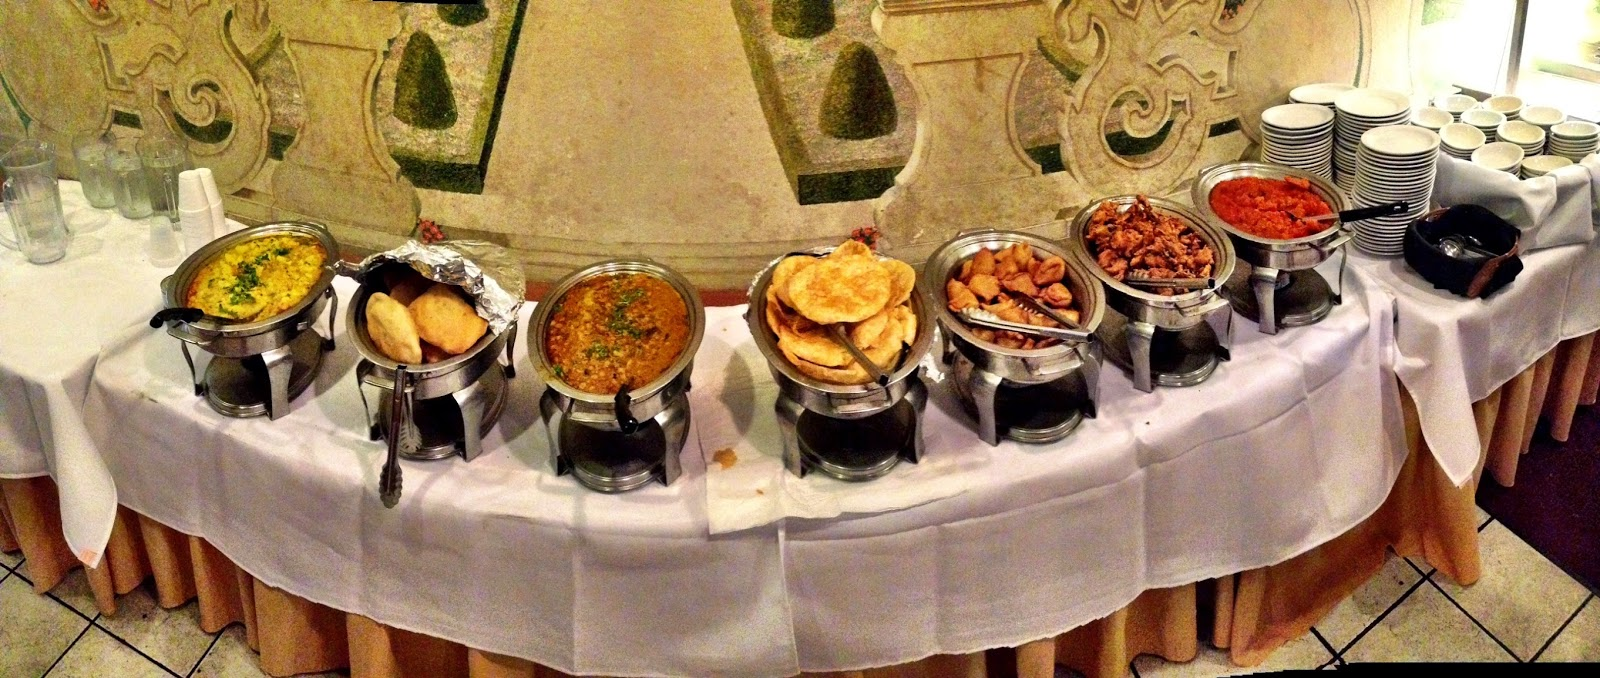 Trends In Wedding Day Buffets That You Need On Your Big Day: PLAN A MENU FOR YOUR BARAAT